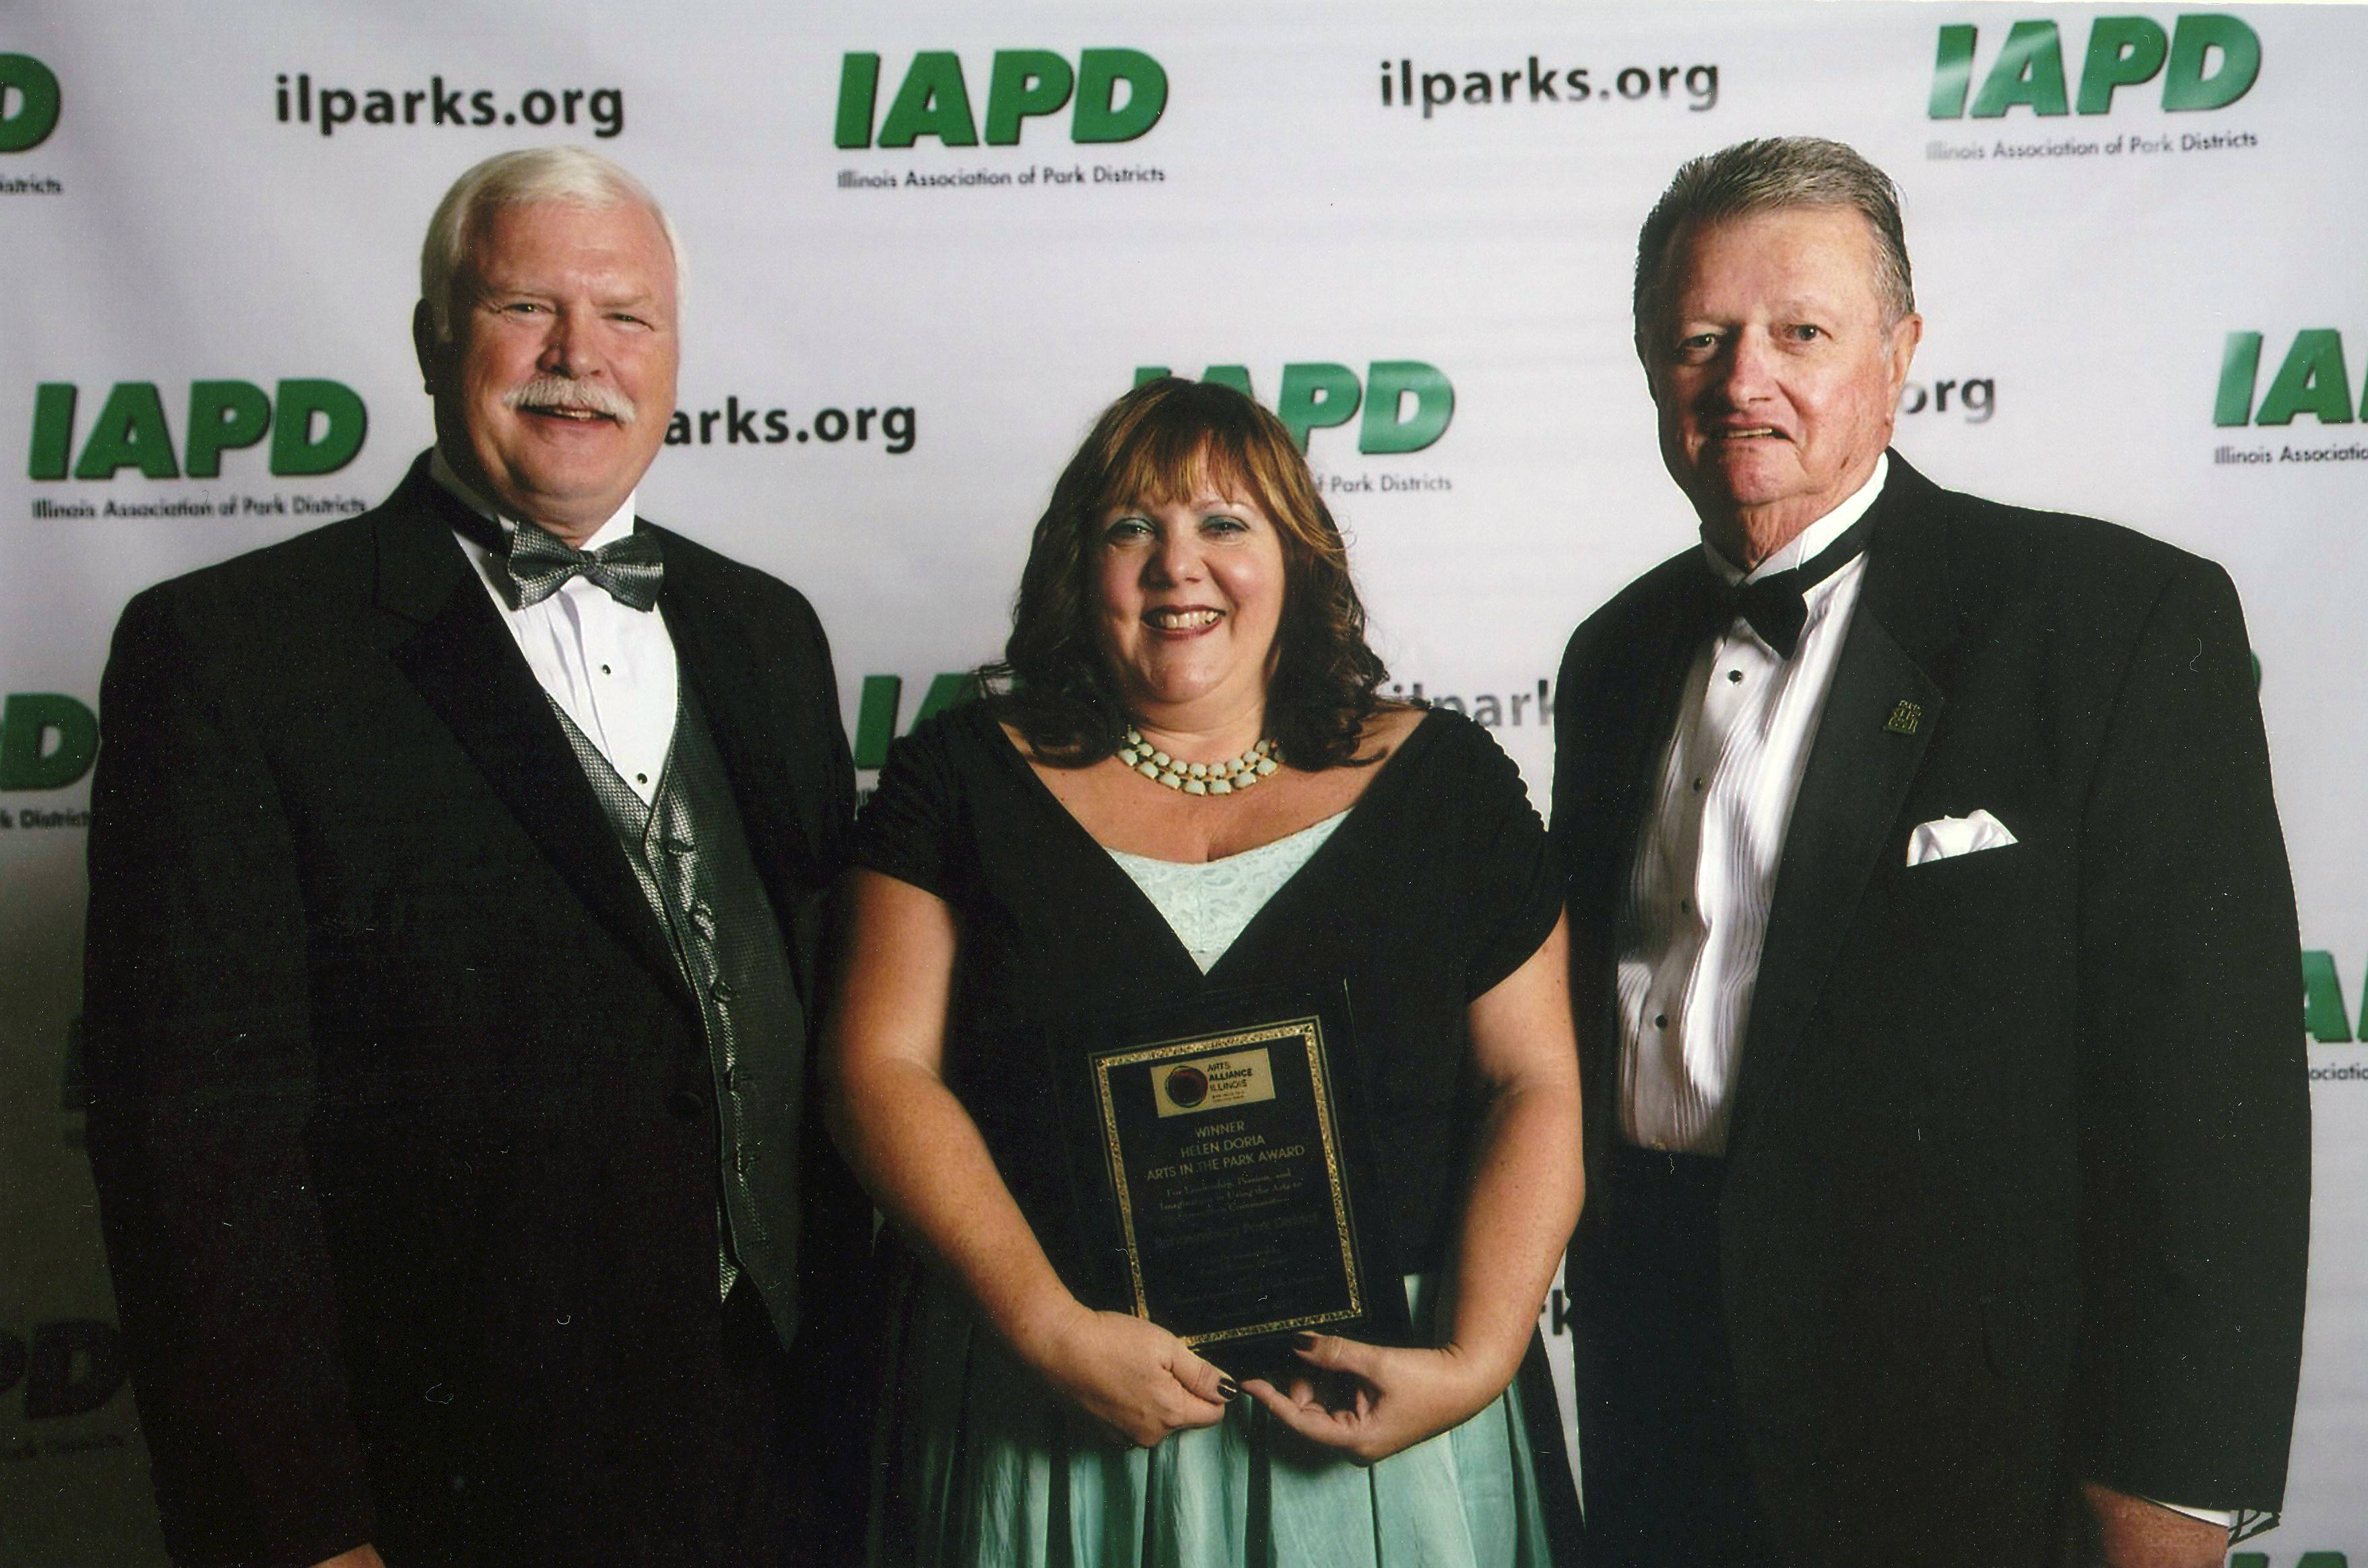 Illinois Association of Park Districts President and CEO Peter Murphy (left to right), Schaumburg Park District Cultural Arts Supervisor Beth Waller and IAPD Chairman Don Andersen stand with the Arts in the Park Award.